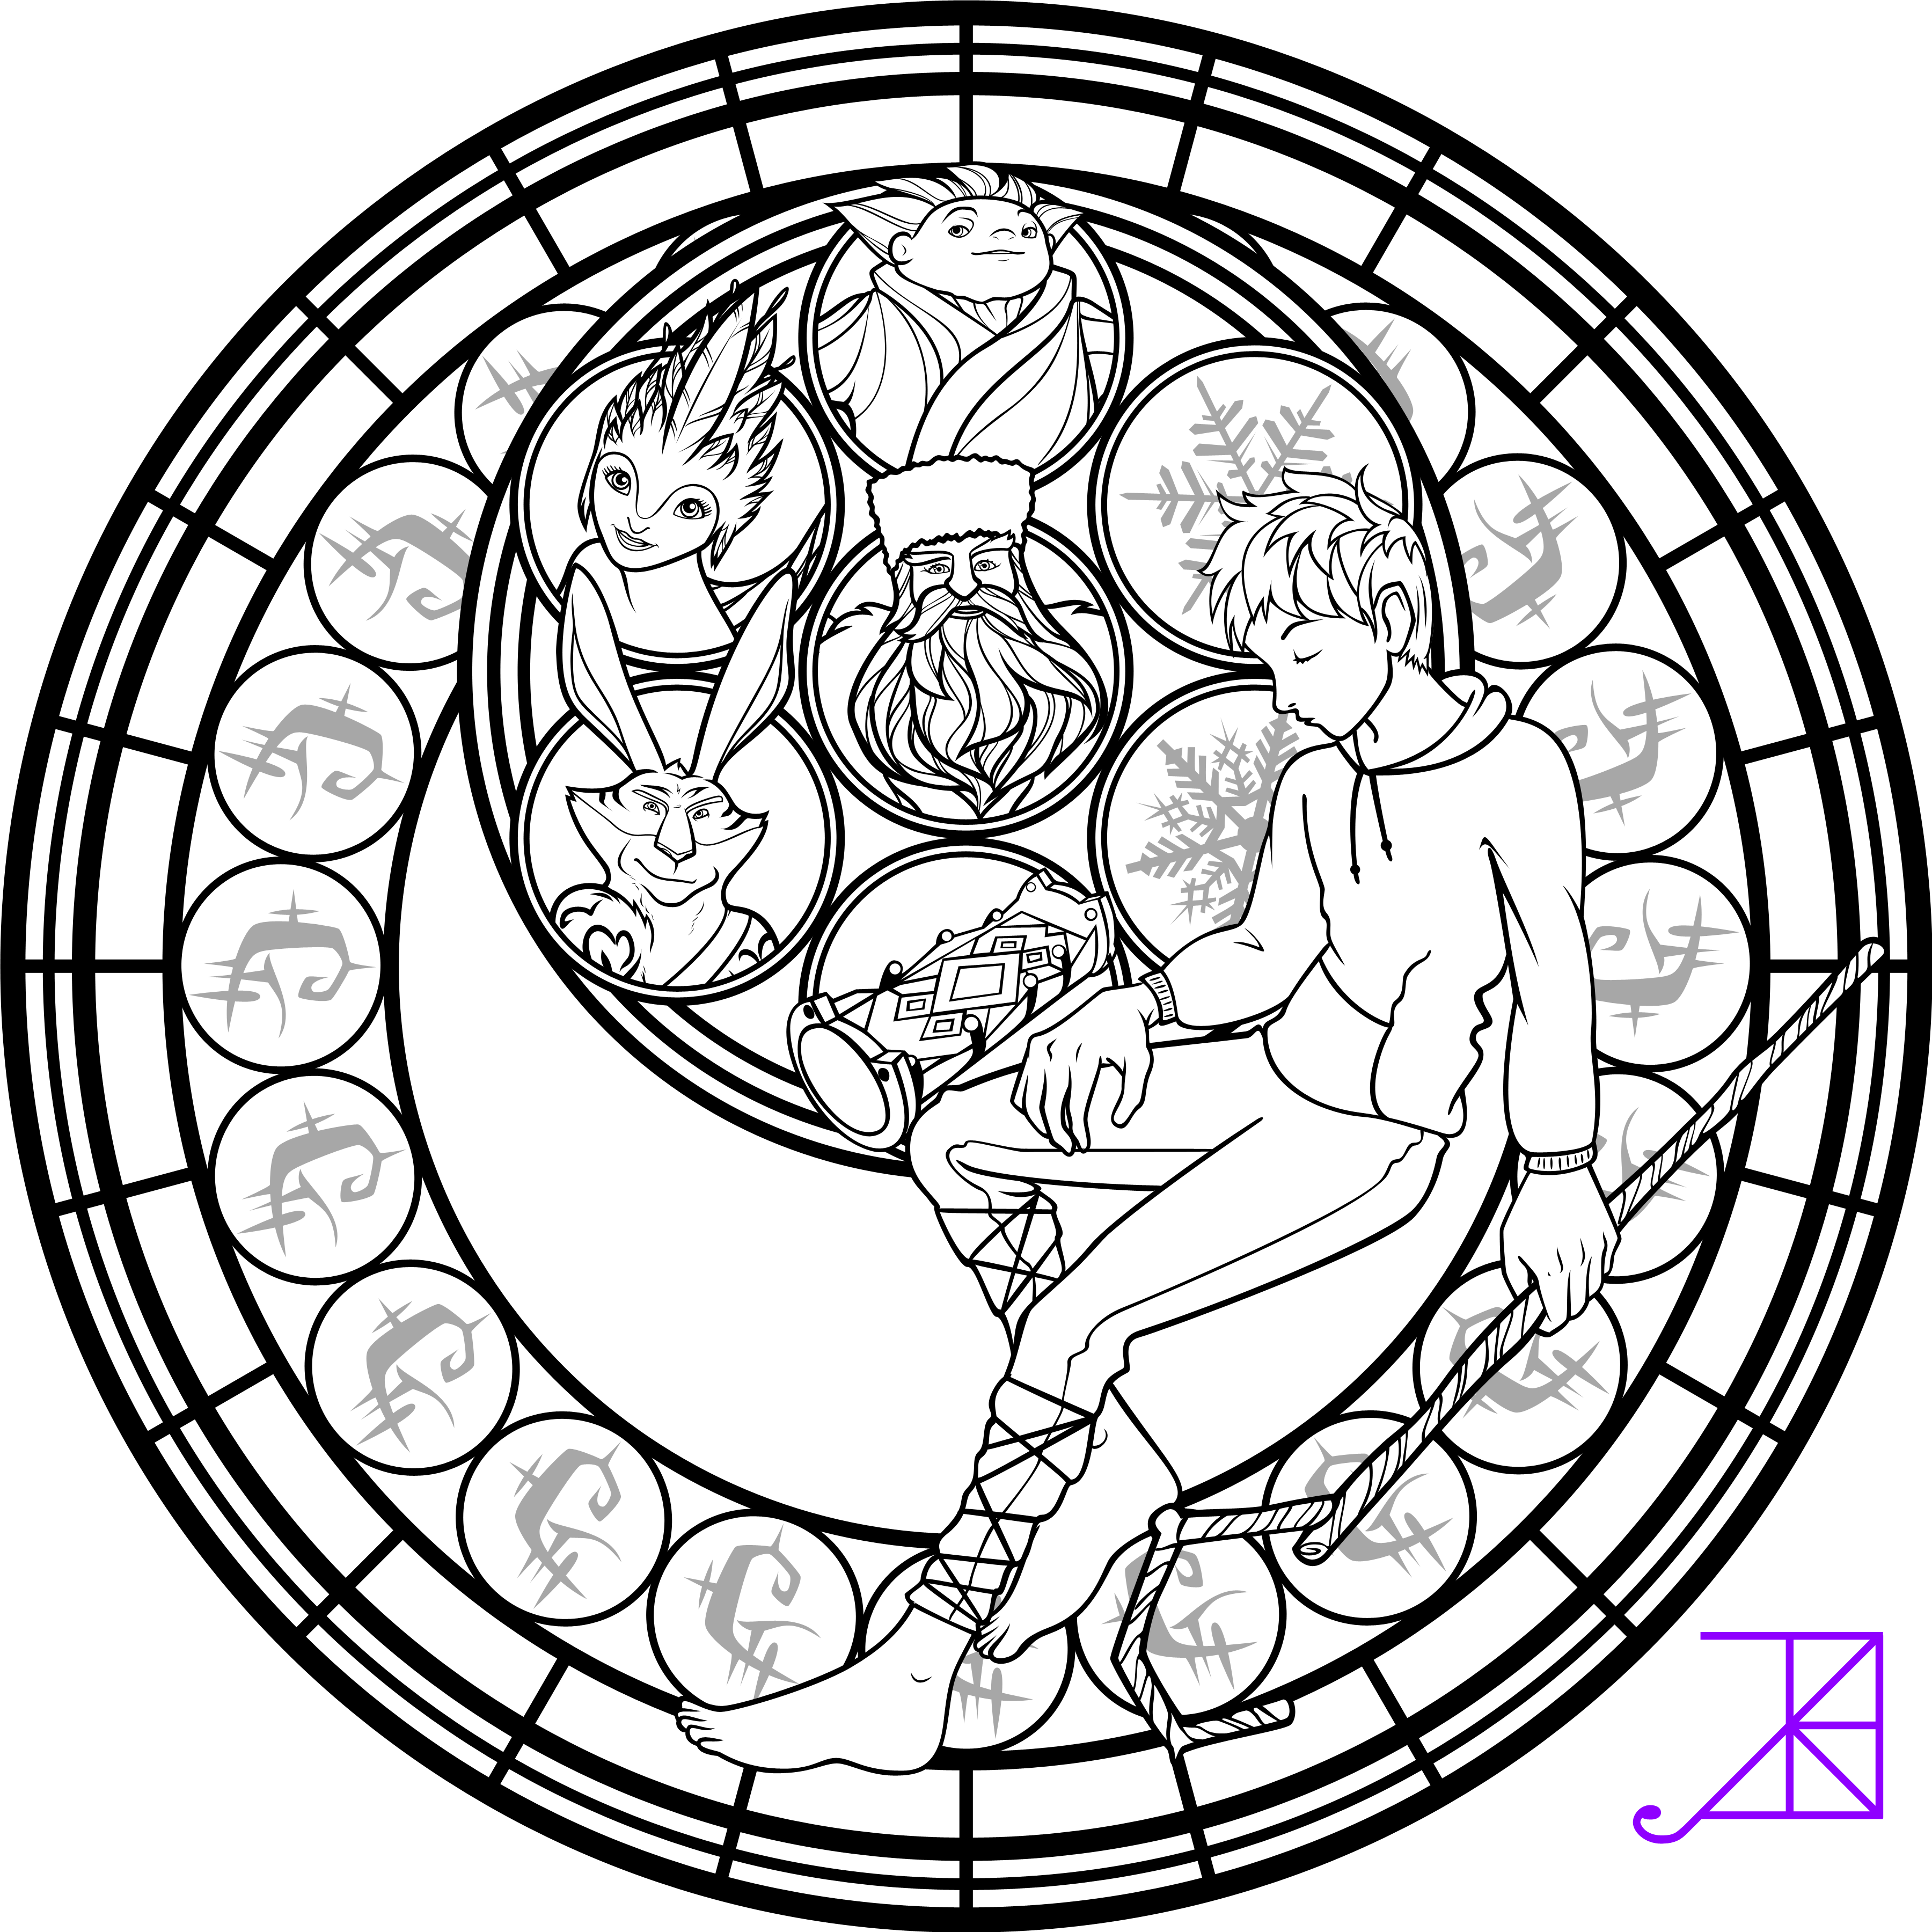 Jack Frost Stained Glass Coloring Page By Akili Amethyst D71ue0a